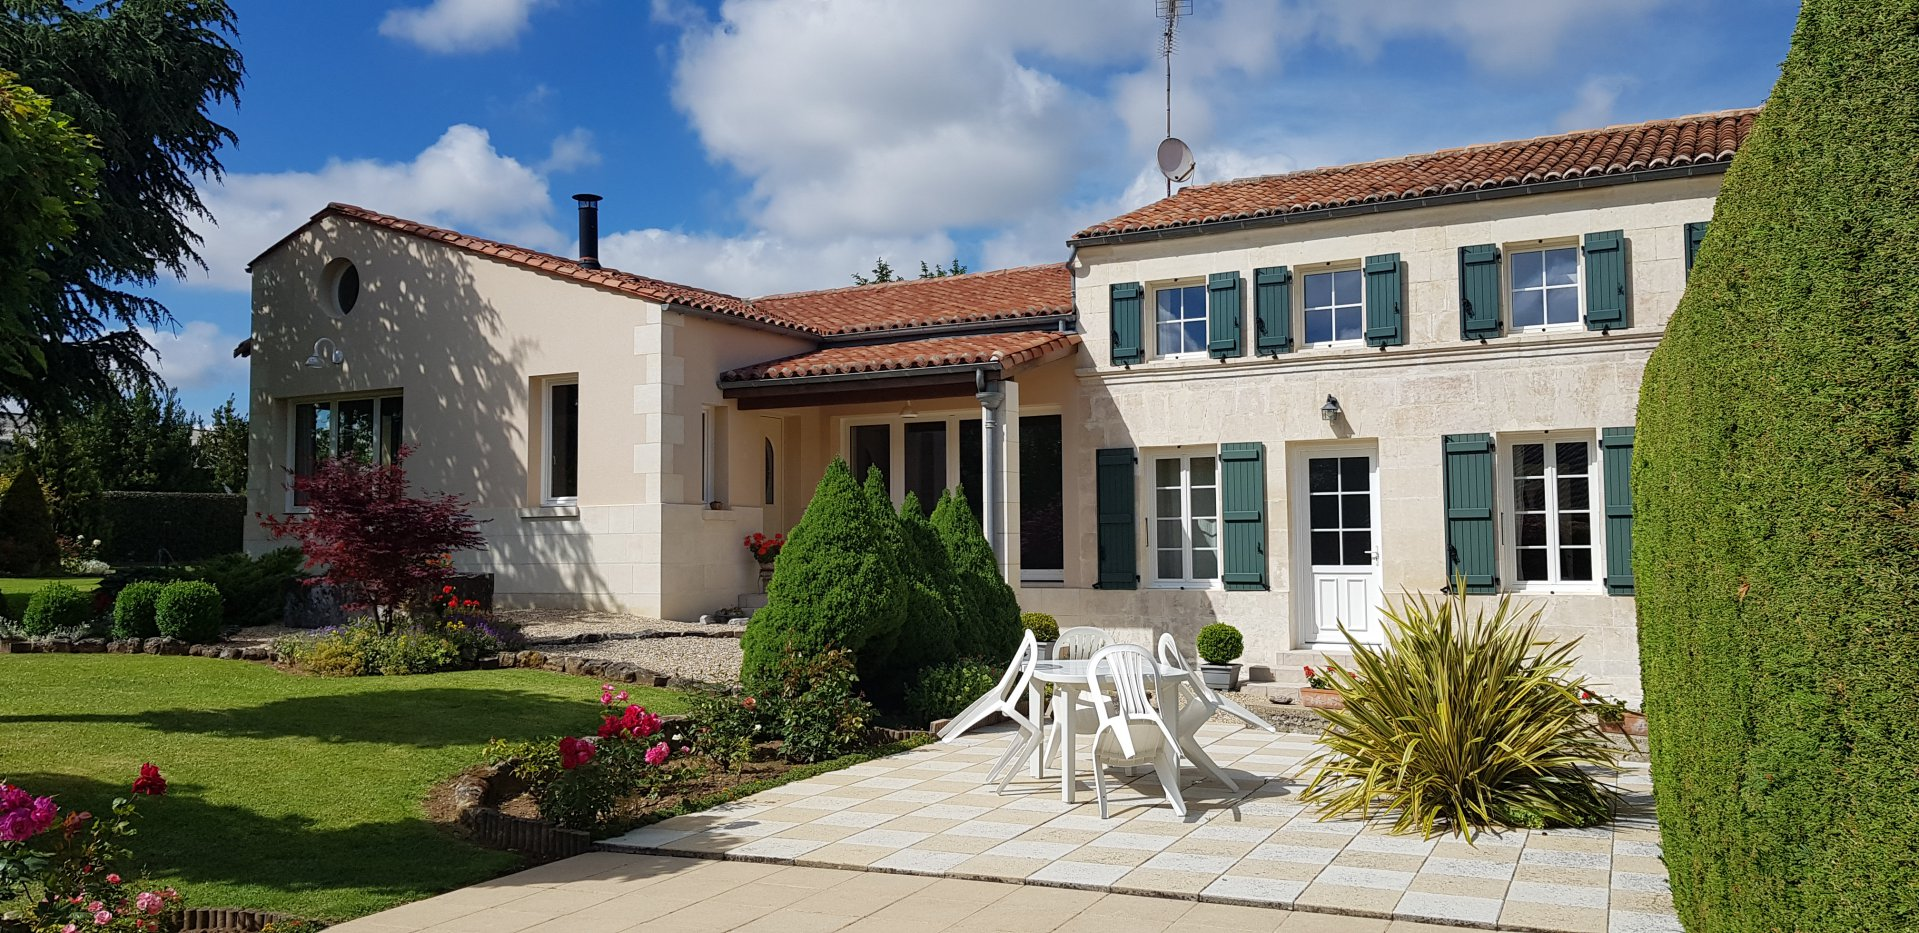 AGREABLE MAISON CHARENTAISE - Secteur PONS